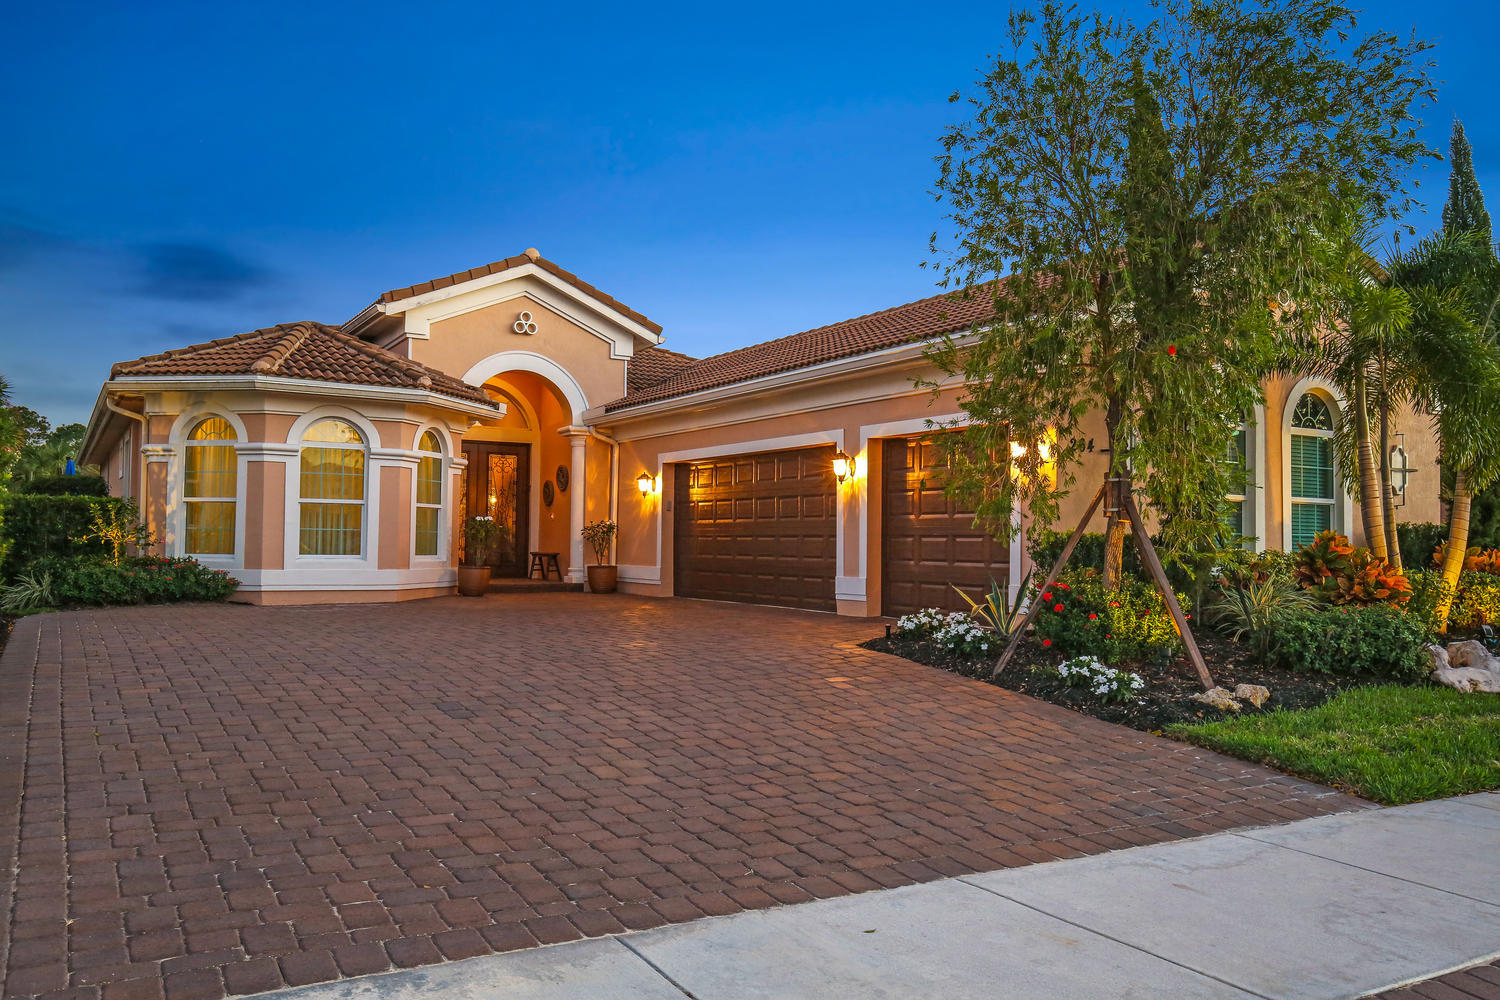 New Home for sale at 264 Carina Drive in Jupiter